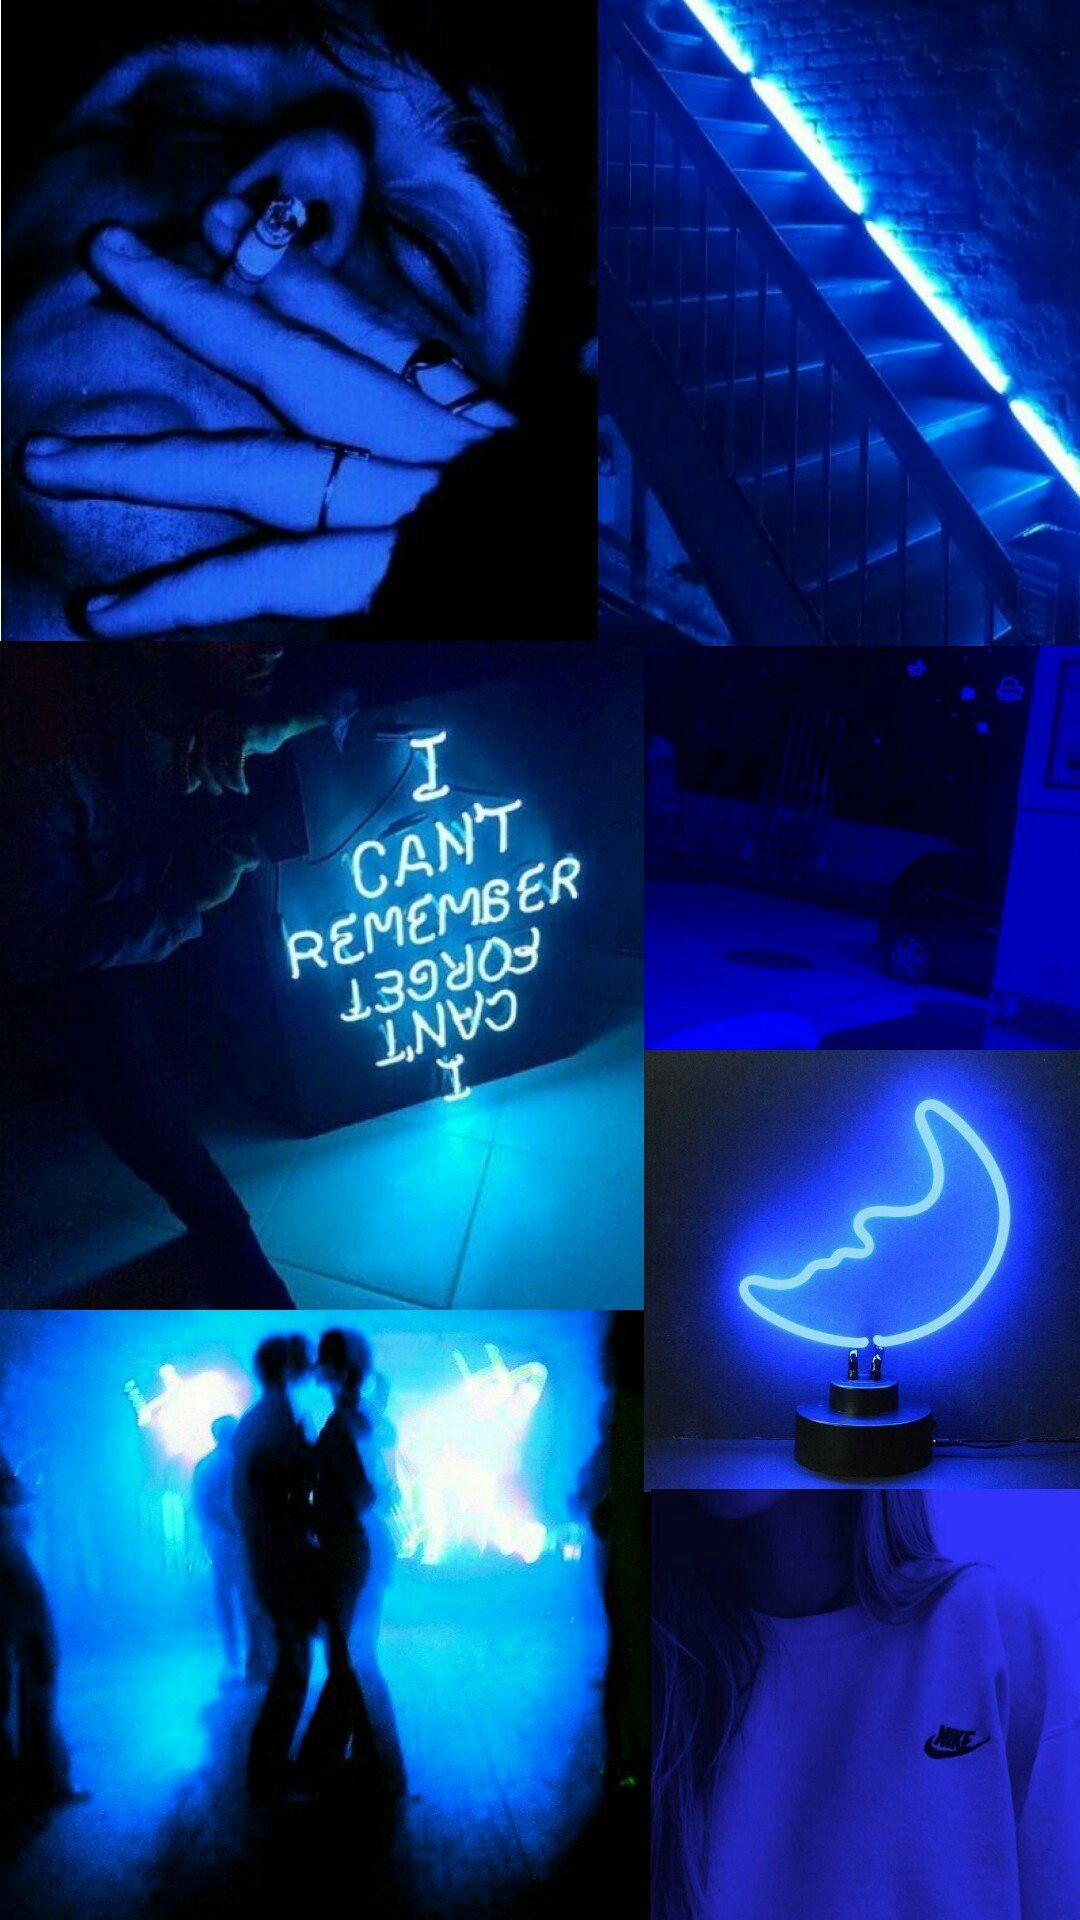 Aesthetic Neon Blue Wallpapers - Wallpaper Cave